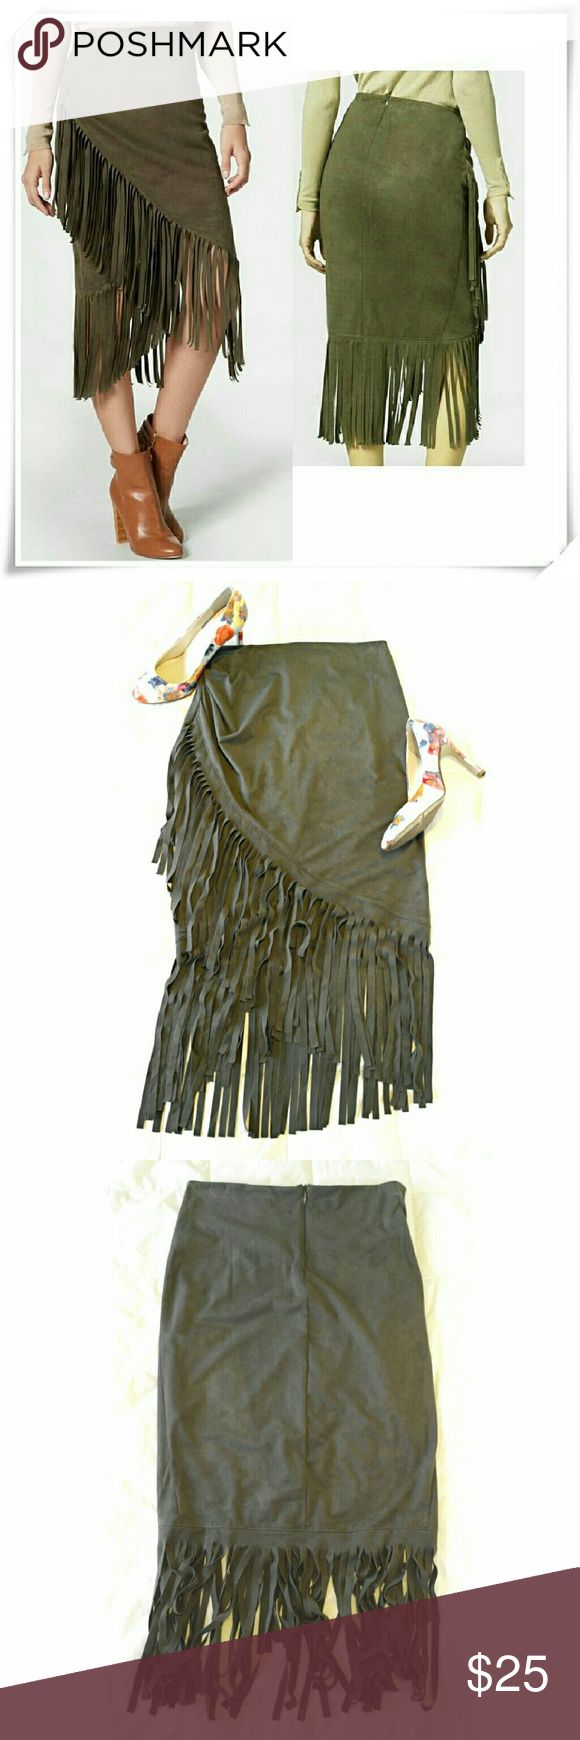 Faux suede fringe skirt Assimetrical faux suede skirt. Measurments will be posted shortly  ?? Ask questions ??  Lined till the shortest hem of the skirt. The color looks different depending on the light. The stock picture looks brown, but the real color is olive green. The skirt is very stretchy, including the waist. Recommended for not very curvy girls. Back zip clouser. JustFab Skirts Asymmetrical